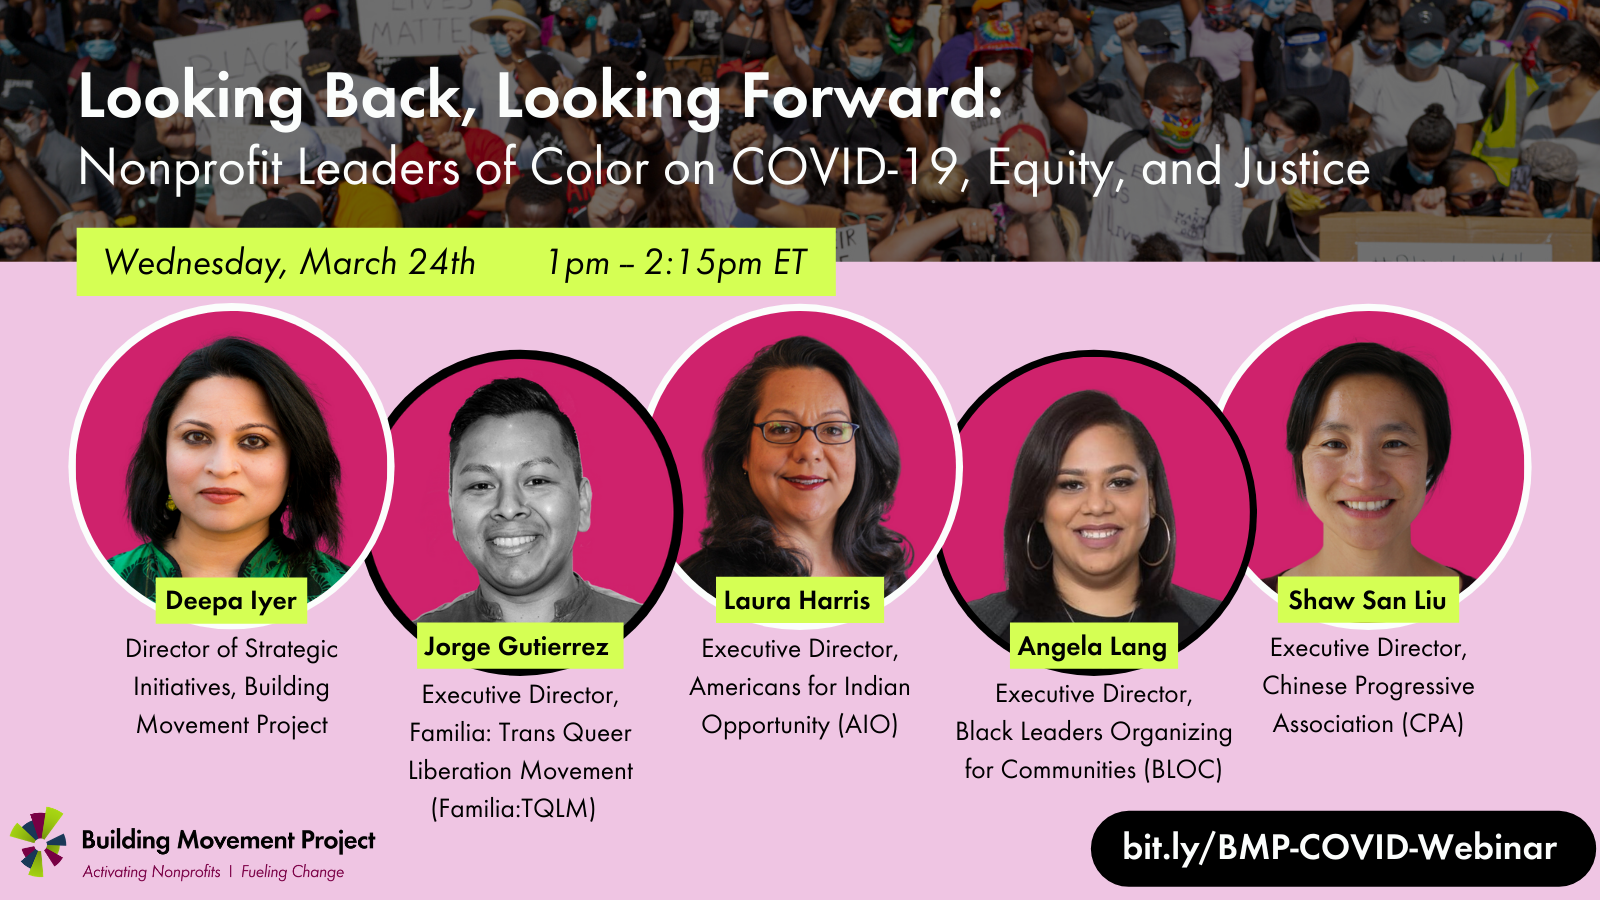 Looking Back, Looking Forward: Nonprofit Leaders of Color on COVID-19, Equity, and Justice